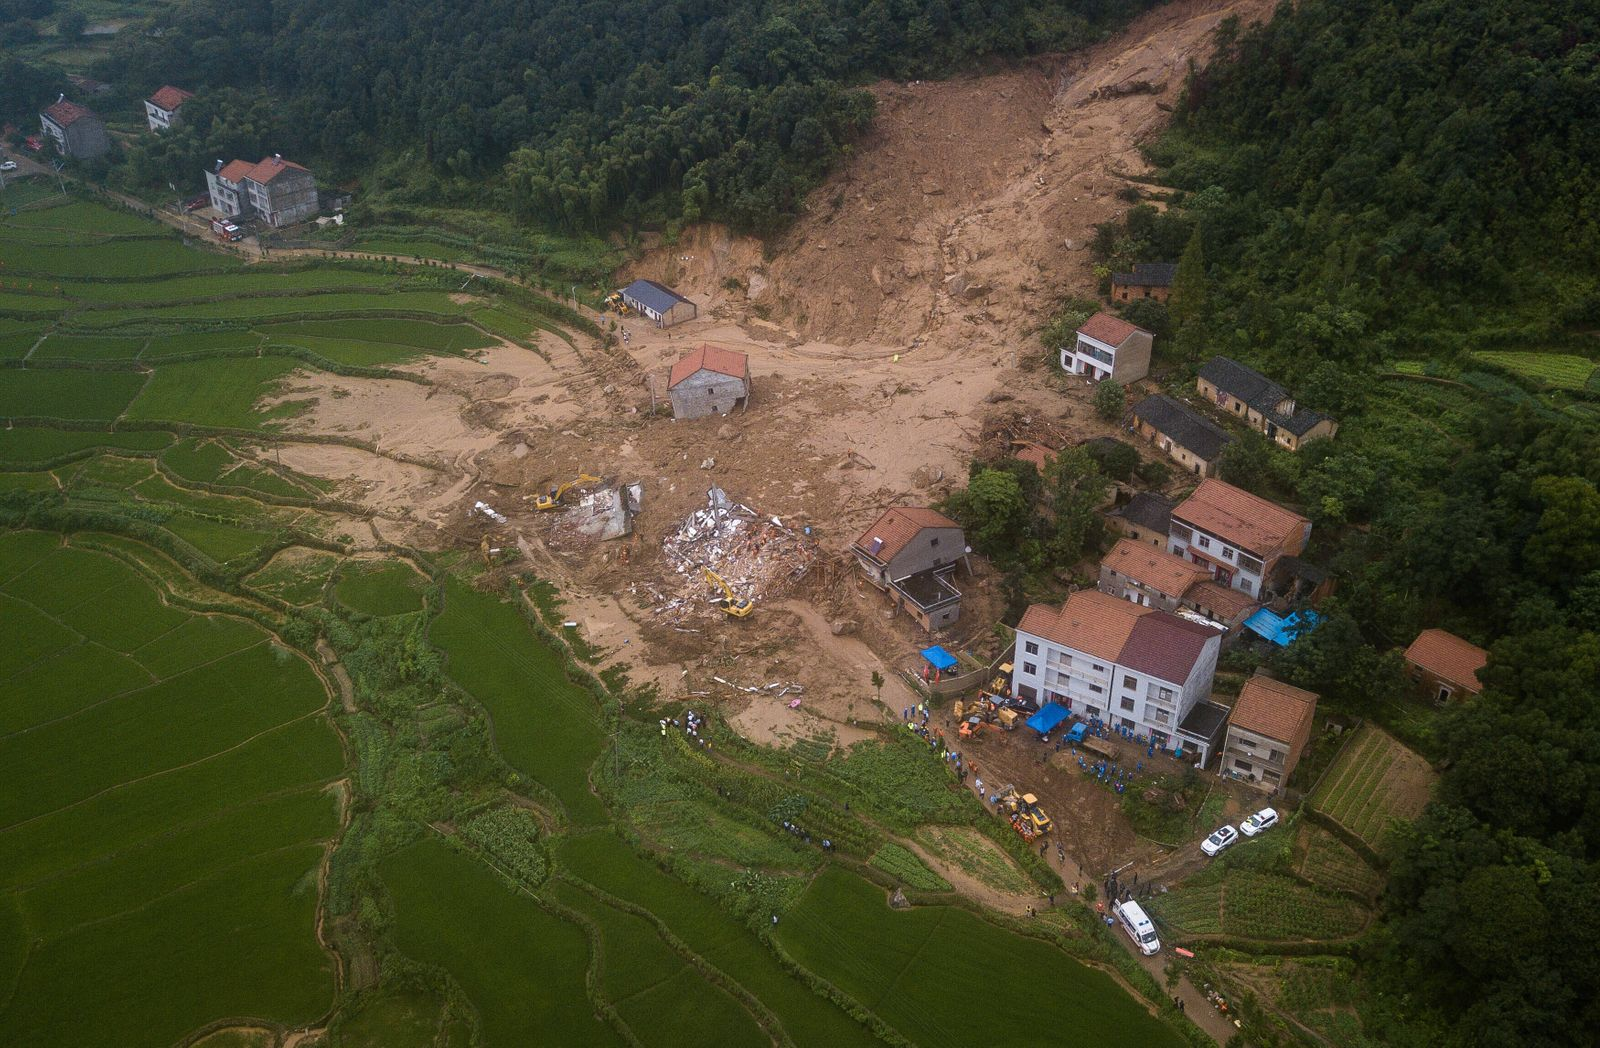 (200709) -- HUANGMEI, July 9, 2020 -- Aerial photos shows the rescue site of a landslide at Yuanshan Village, Dahe Towns